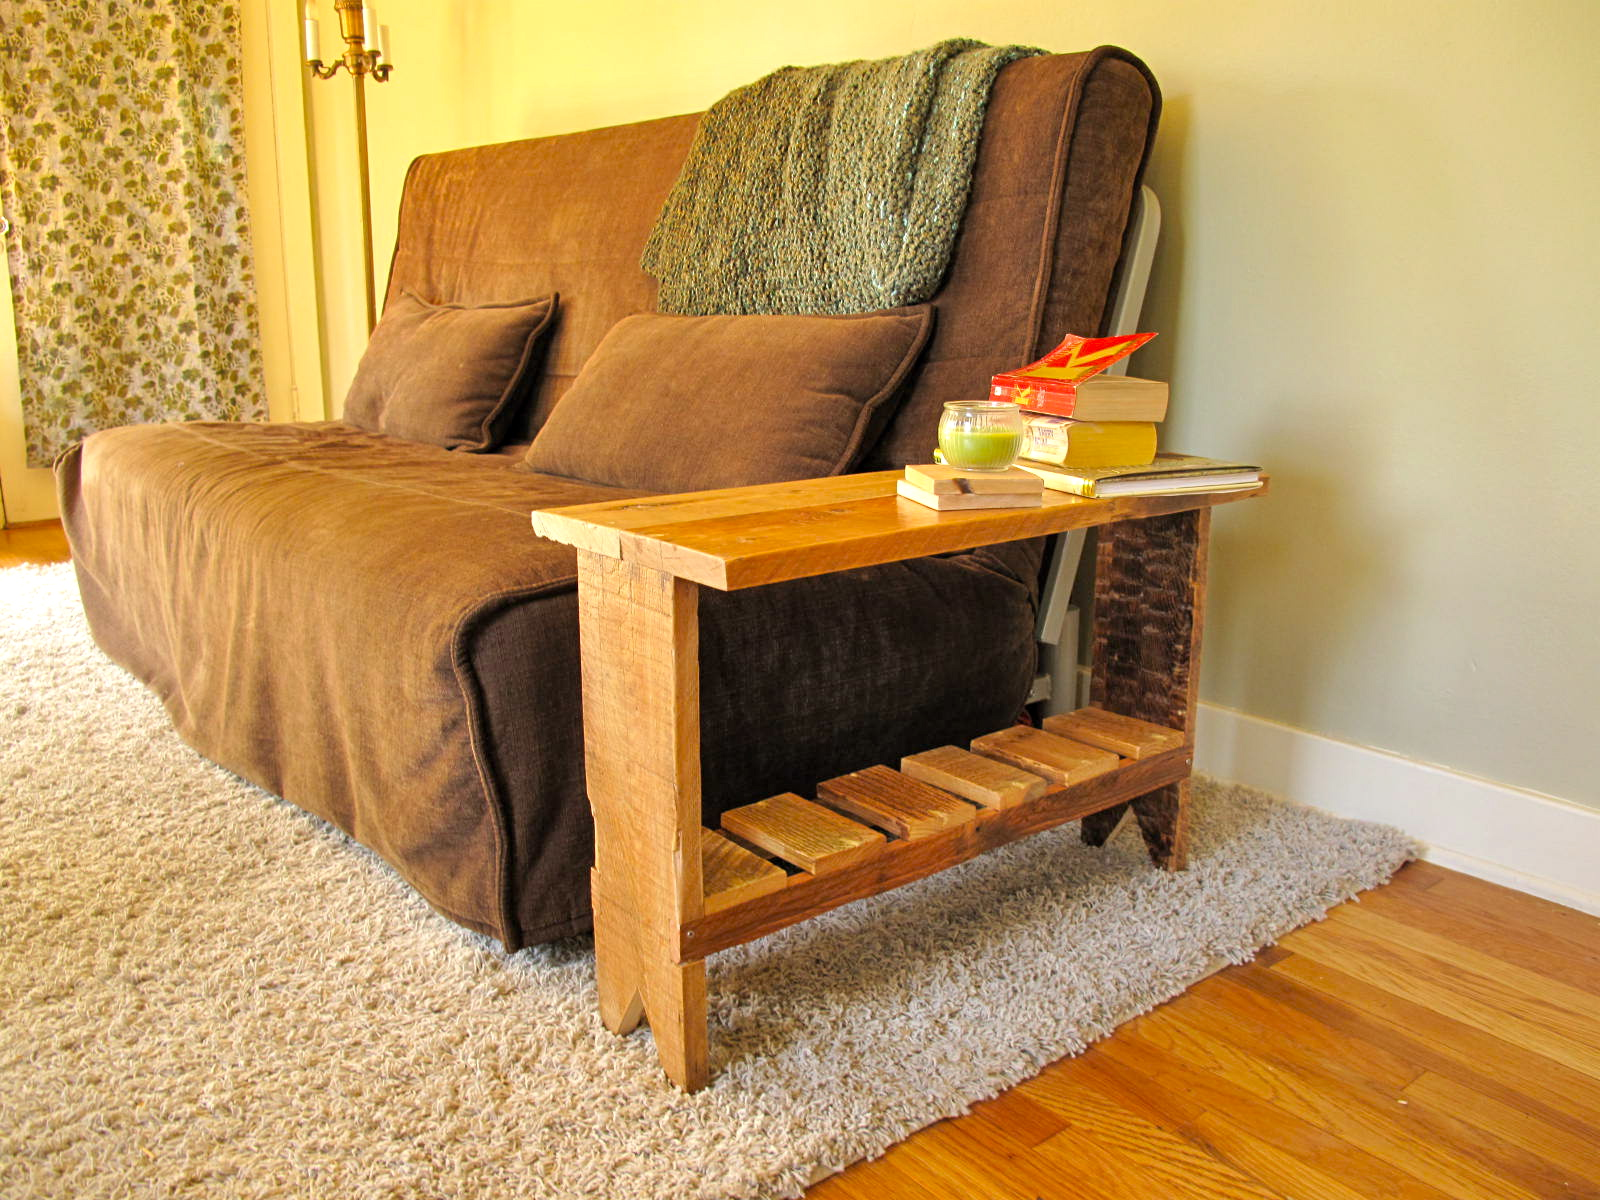 DIY: Pallet End Table